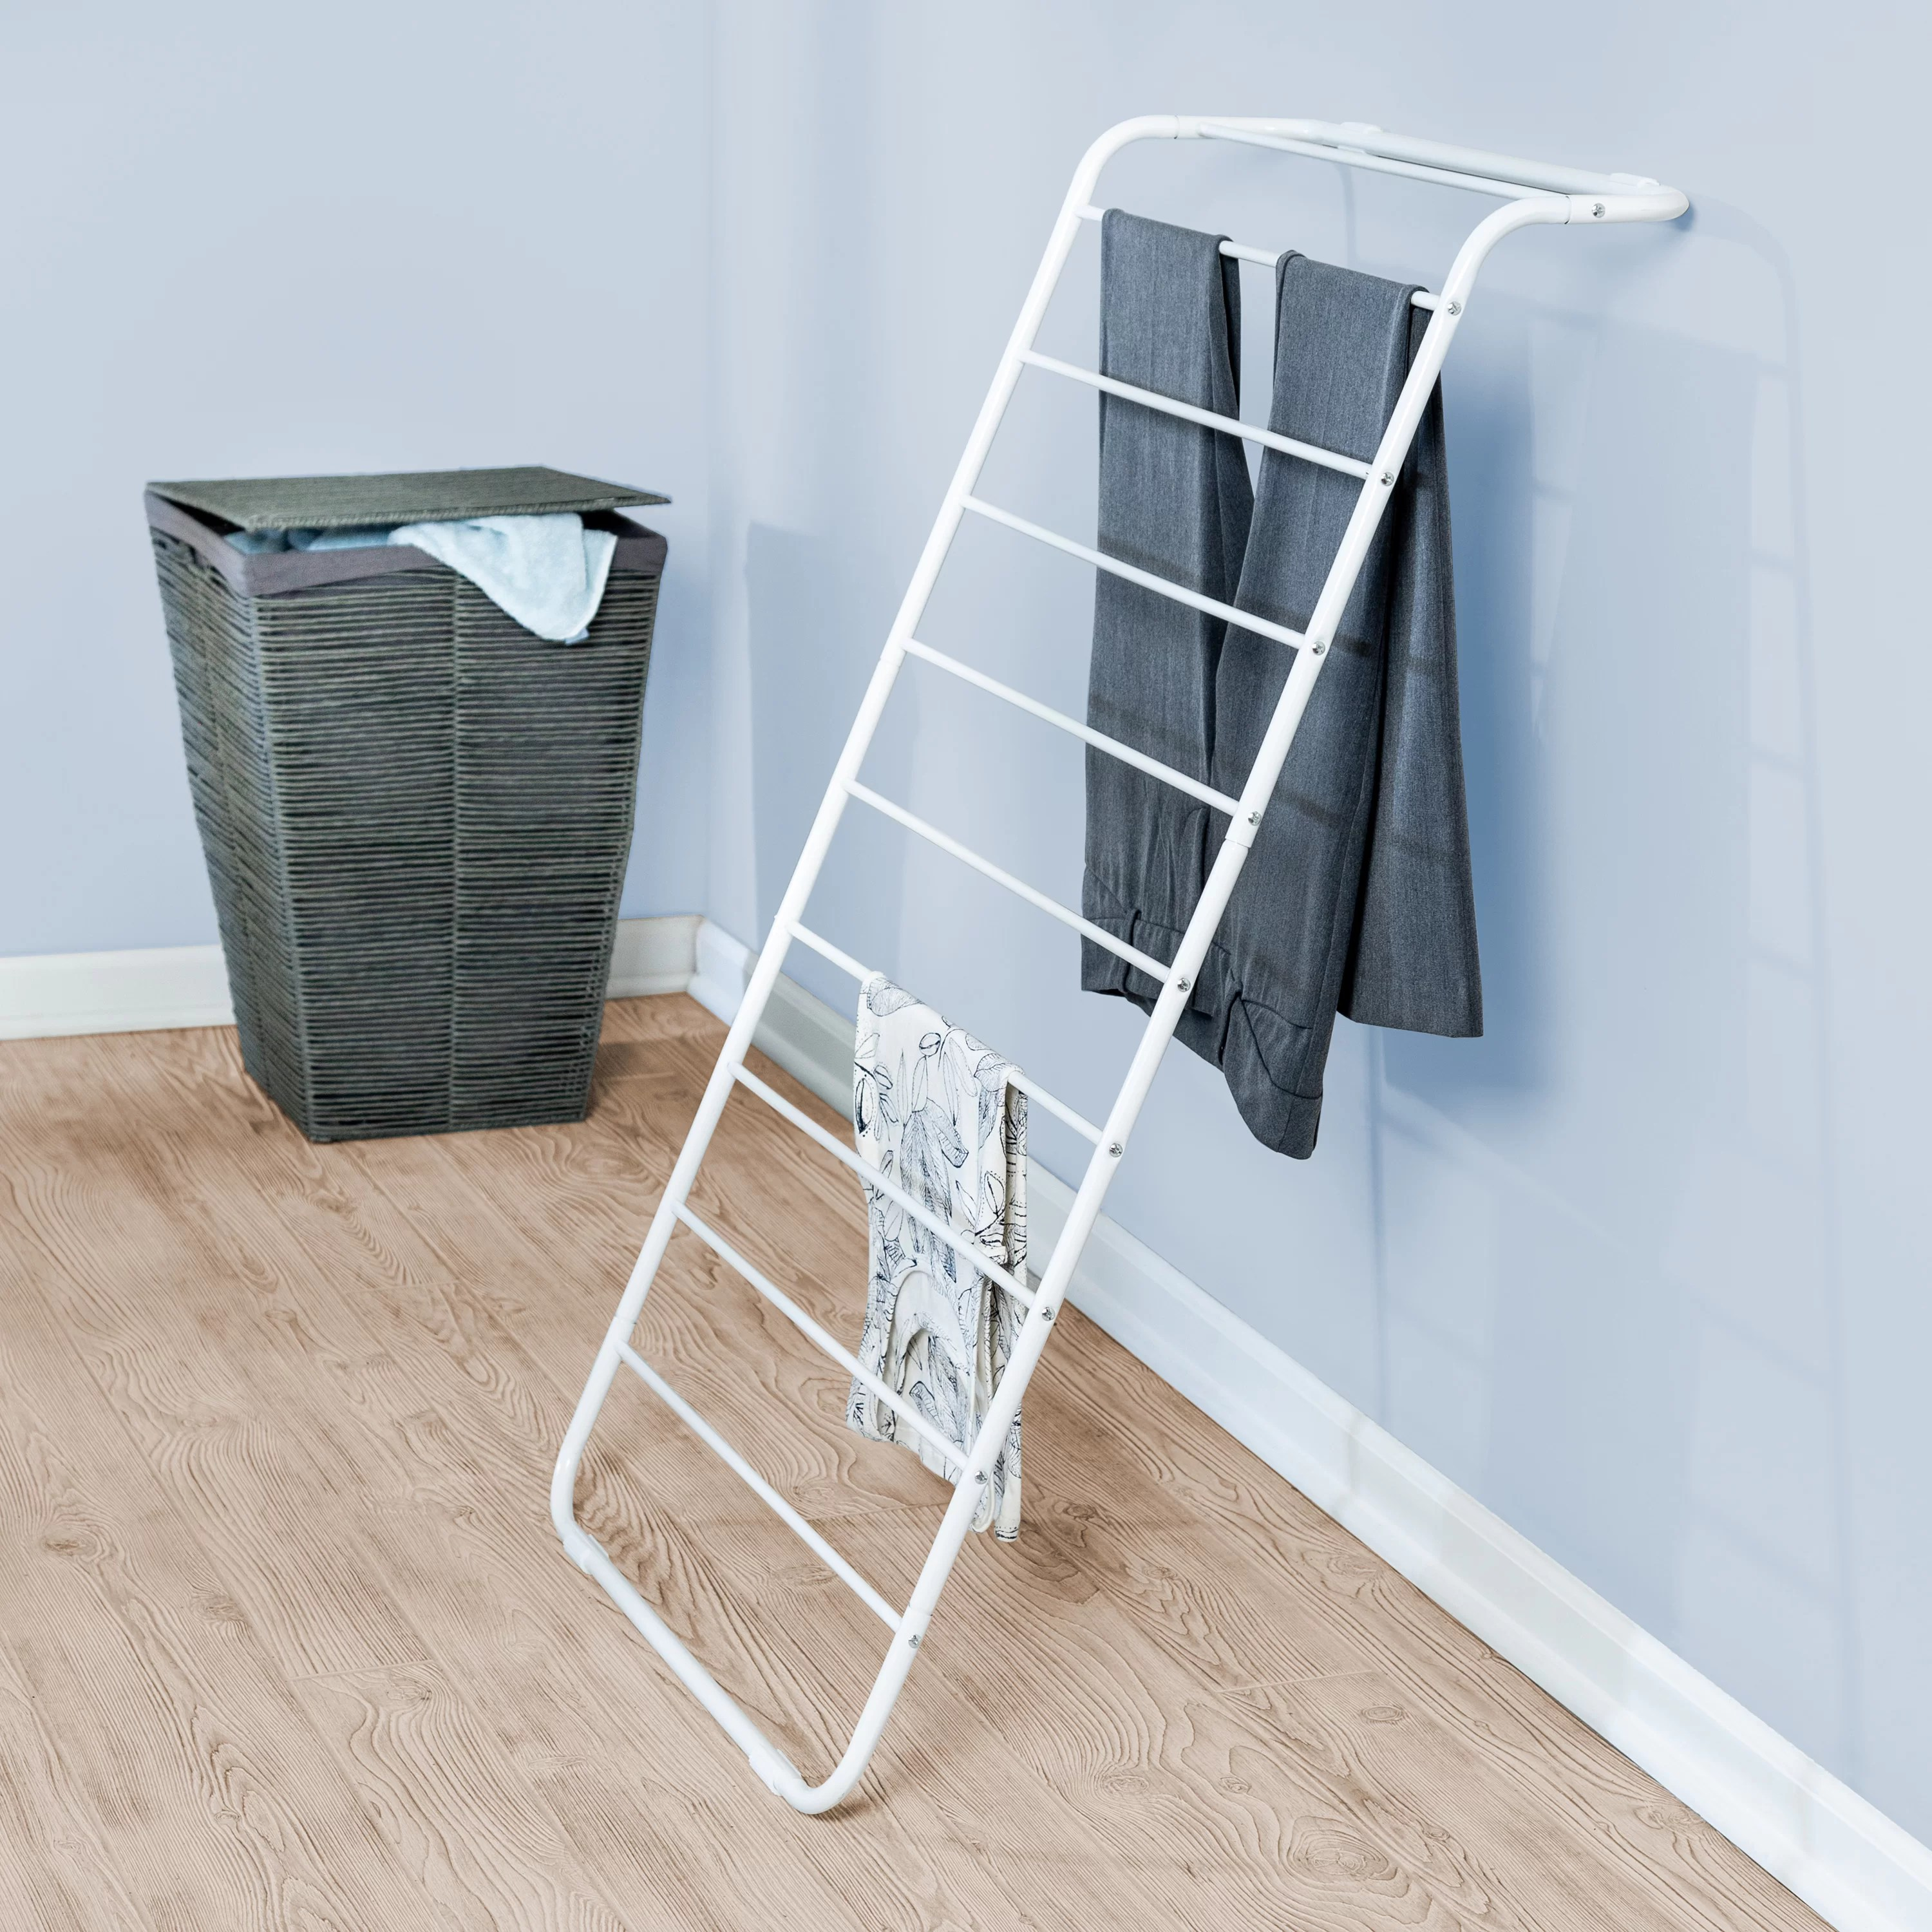 Rebrilliant Leaning Wall Mounted Drying Rack Reviews Wayfair